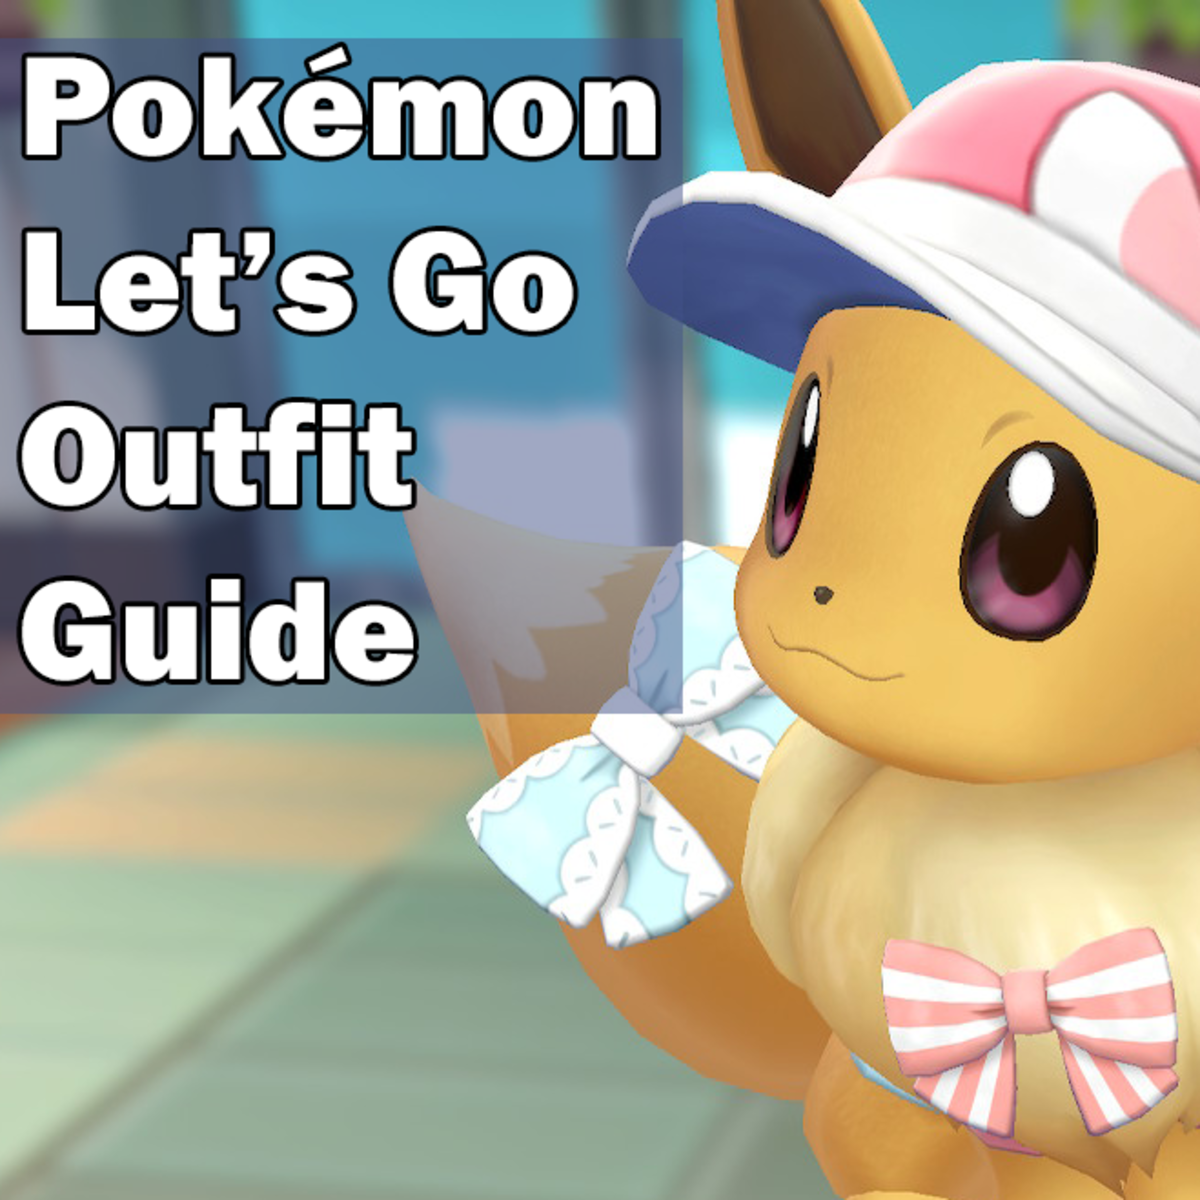 """Pokémon Let's Go"" Outfit Guide"